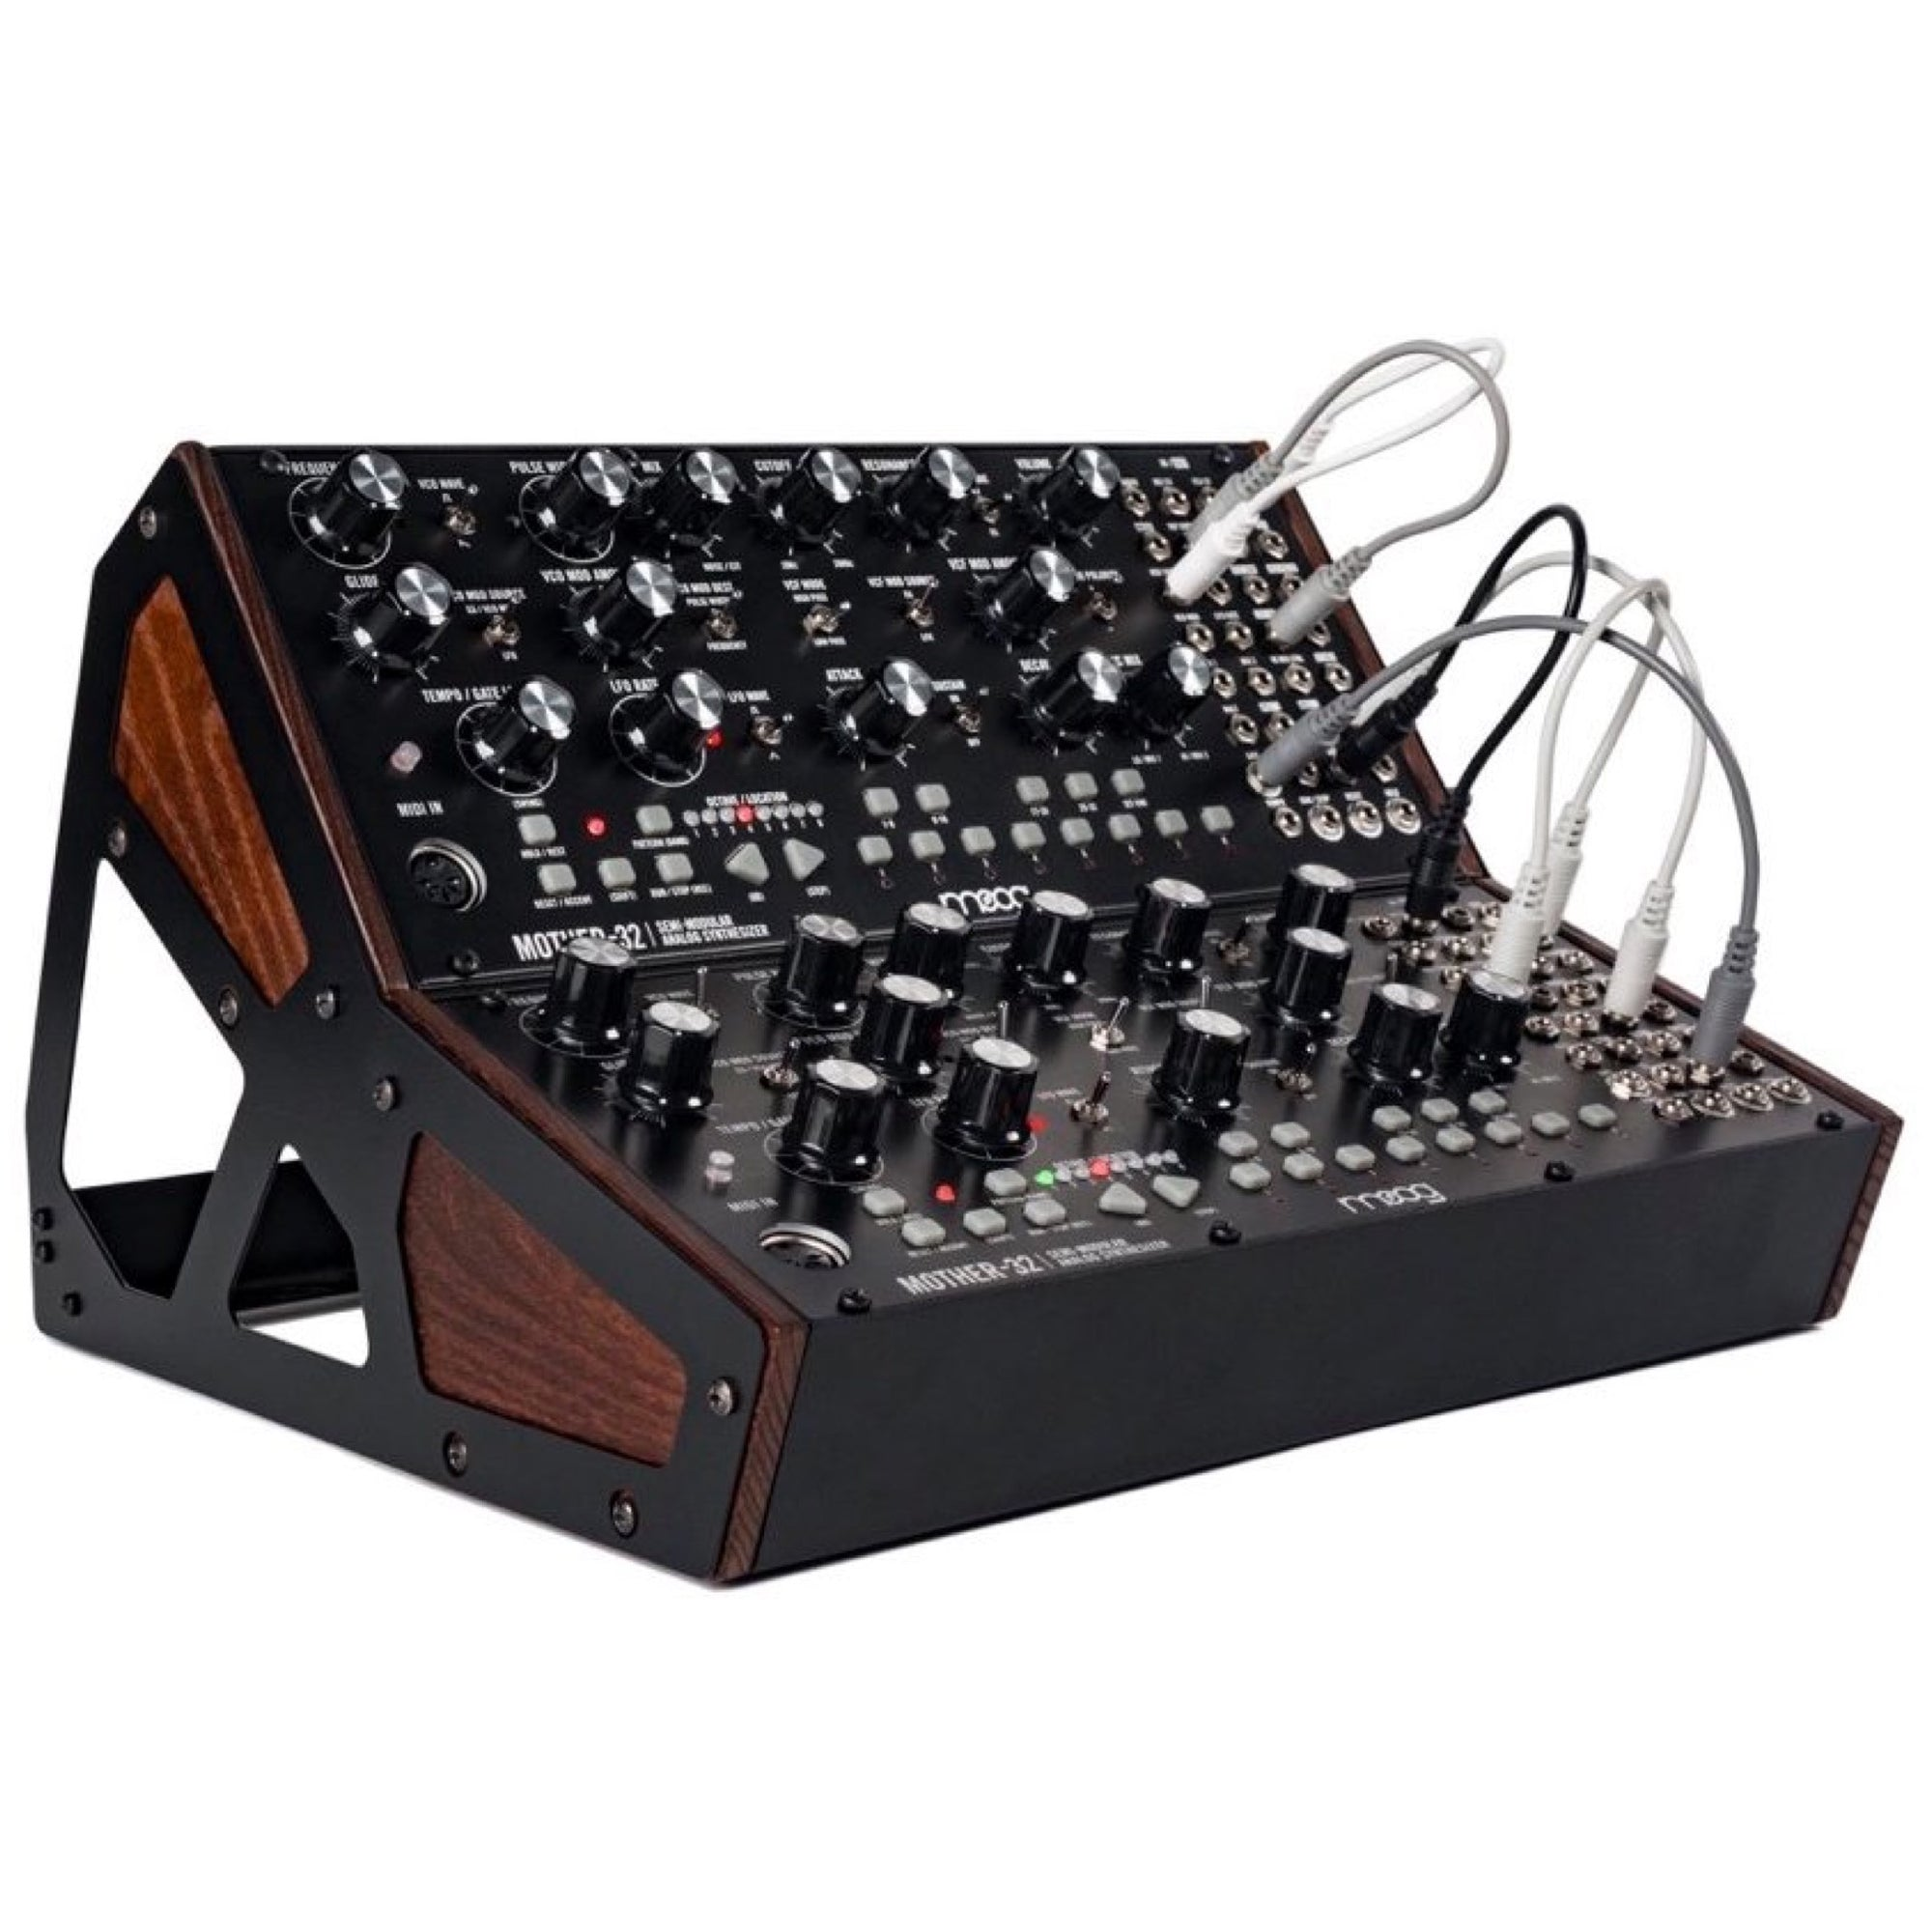 Moog 2-Tier Rack Kit for DFAM and Mother-32 Synthesizer